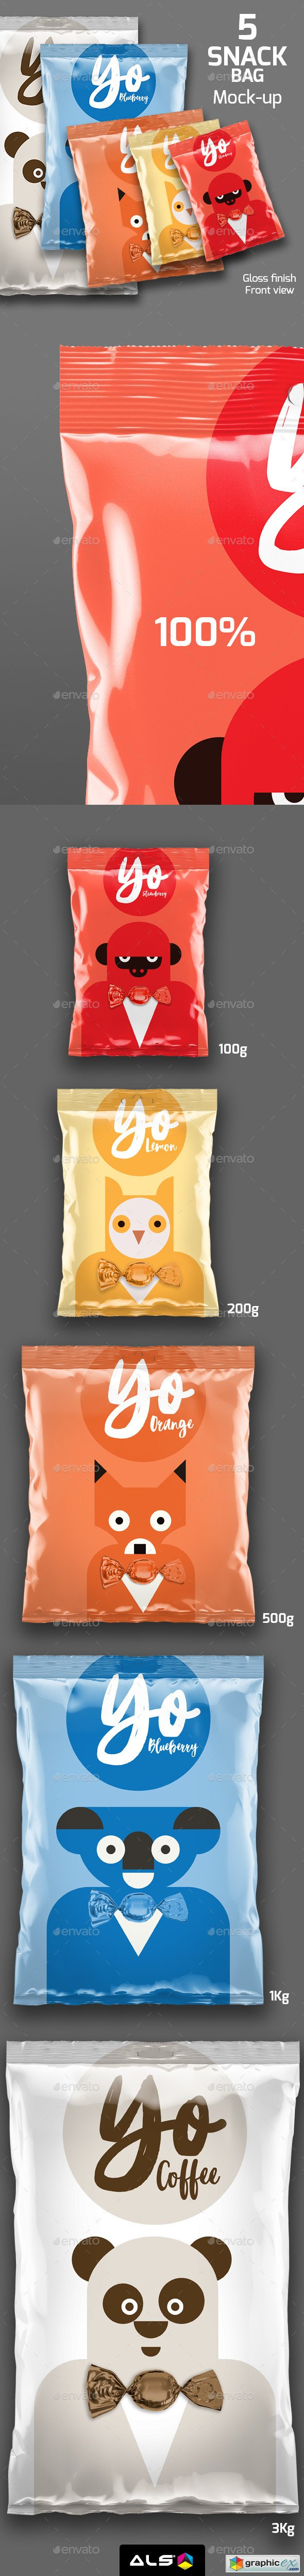 5 Snack Bags Mock-up